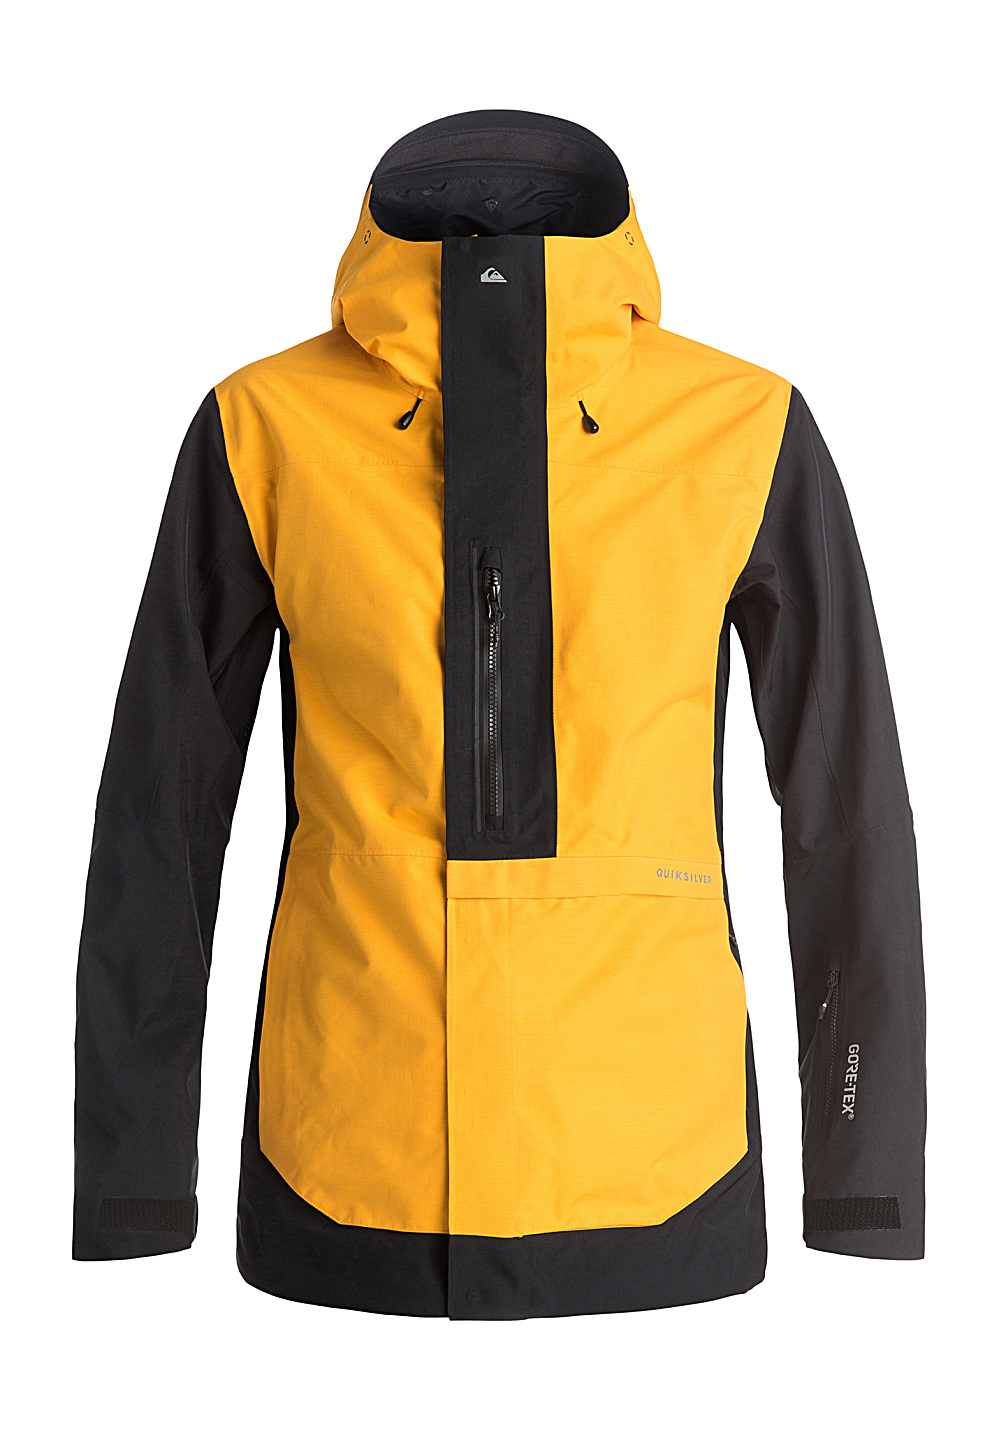 quiksilver travis rice exhibition veste de snowboard pour homme jaune planet sports. Black Bedroom Furniture Sets. Home Design Ideas